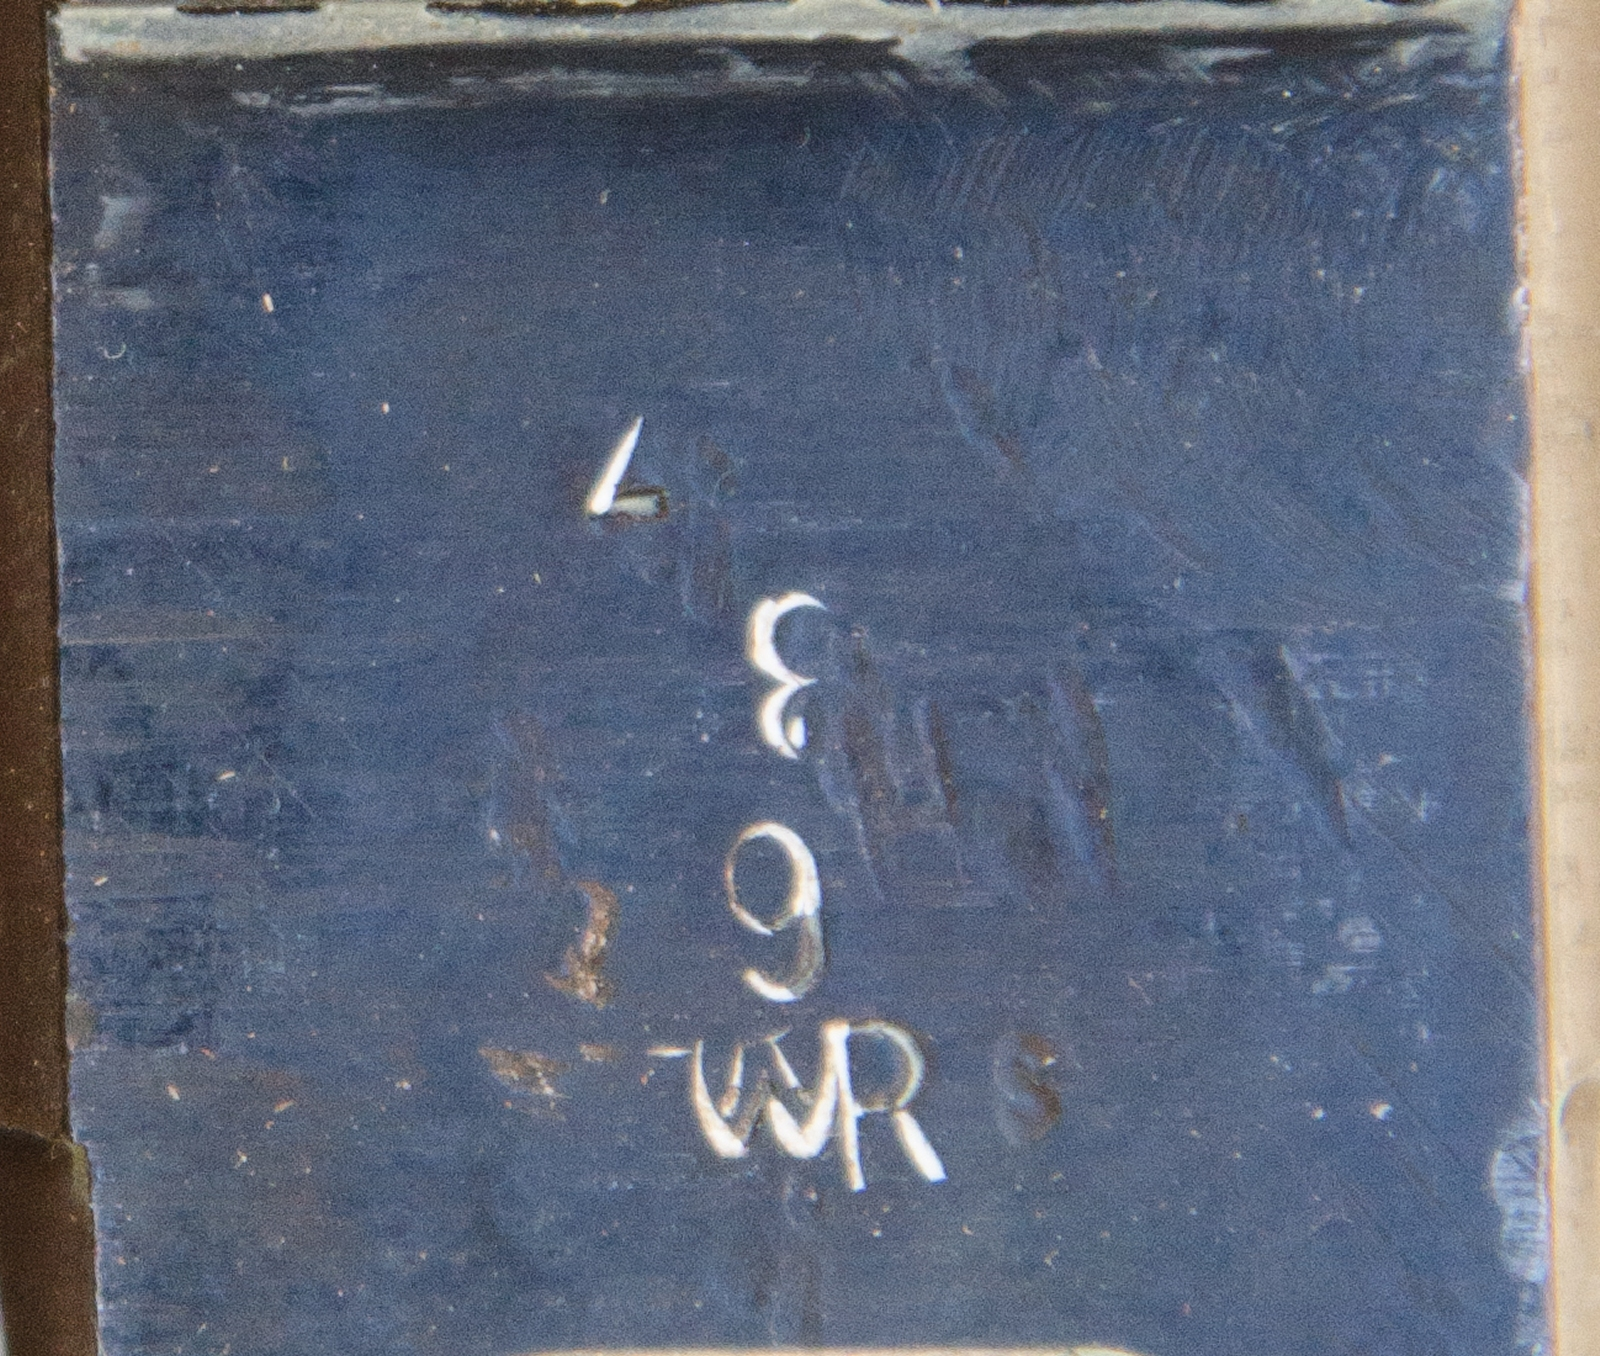 receiver underside detail showing the WR logo